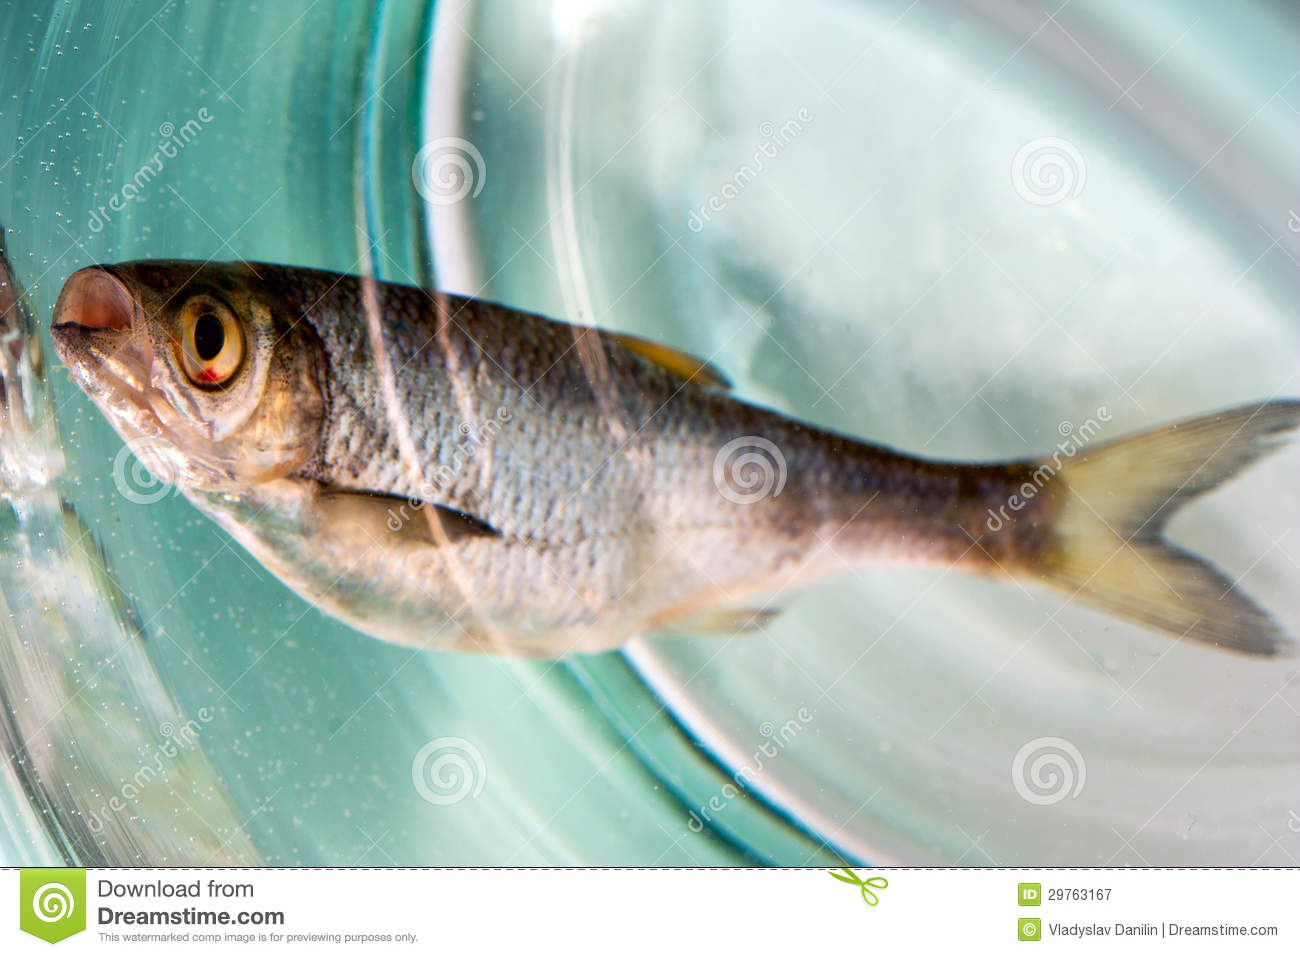 Water pollution the death of animals and fish vector for Pete s fish and chips owner murdered